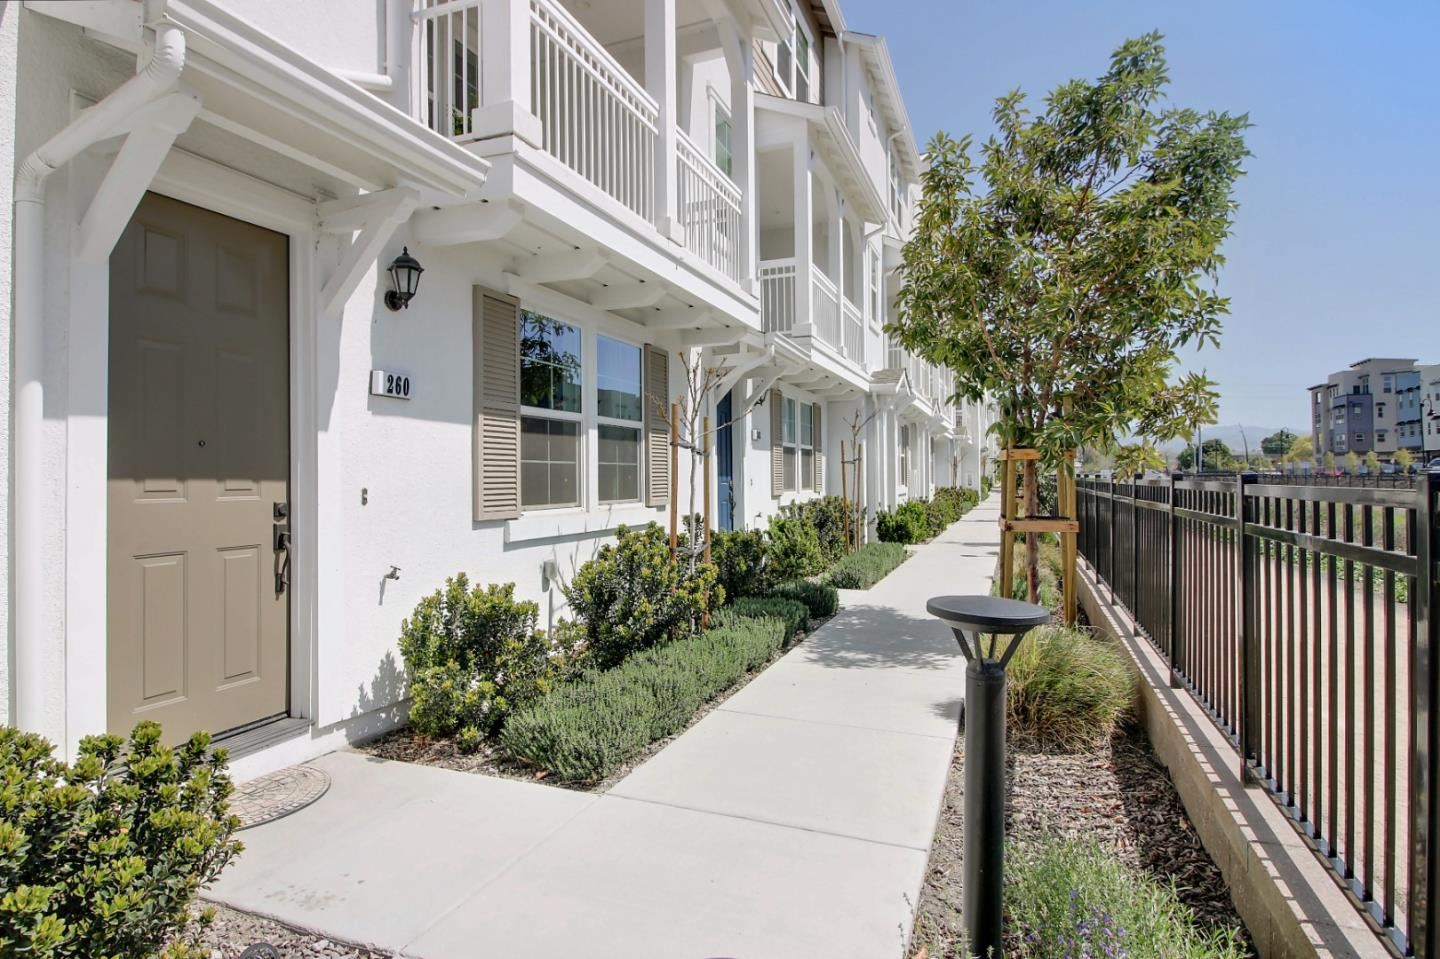 Photo for 260 Wild Rose WAY, MILPITAS, CA 95035 (MLS # ML81836826)